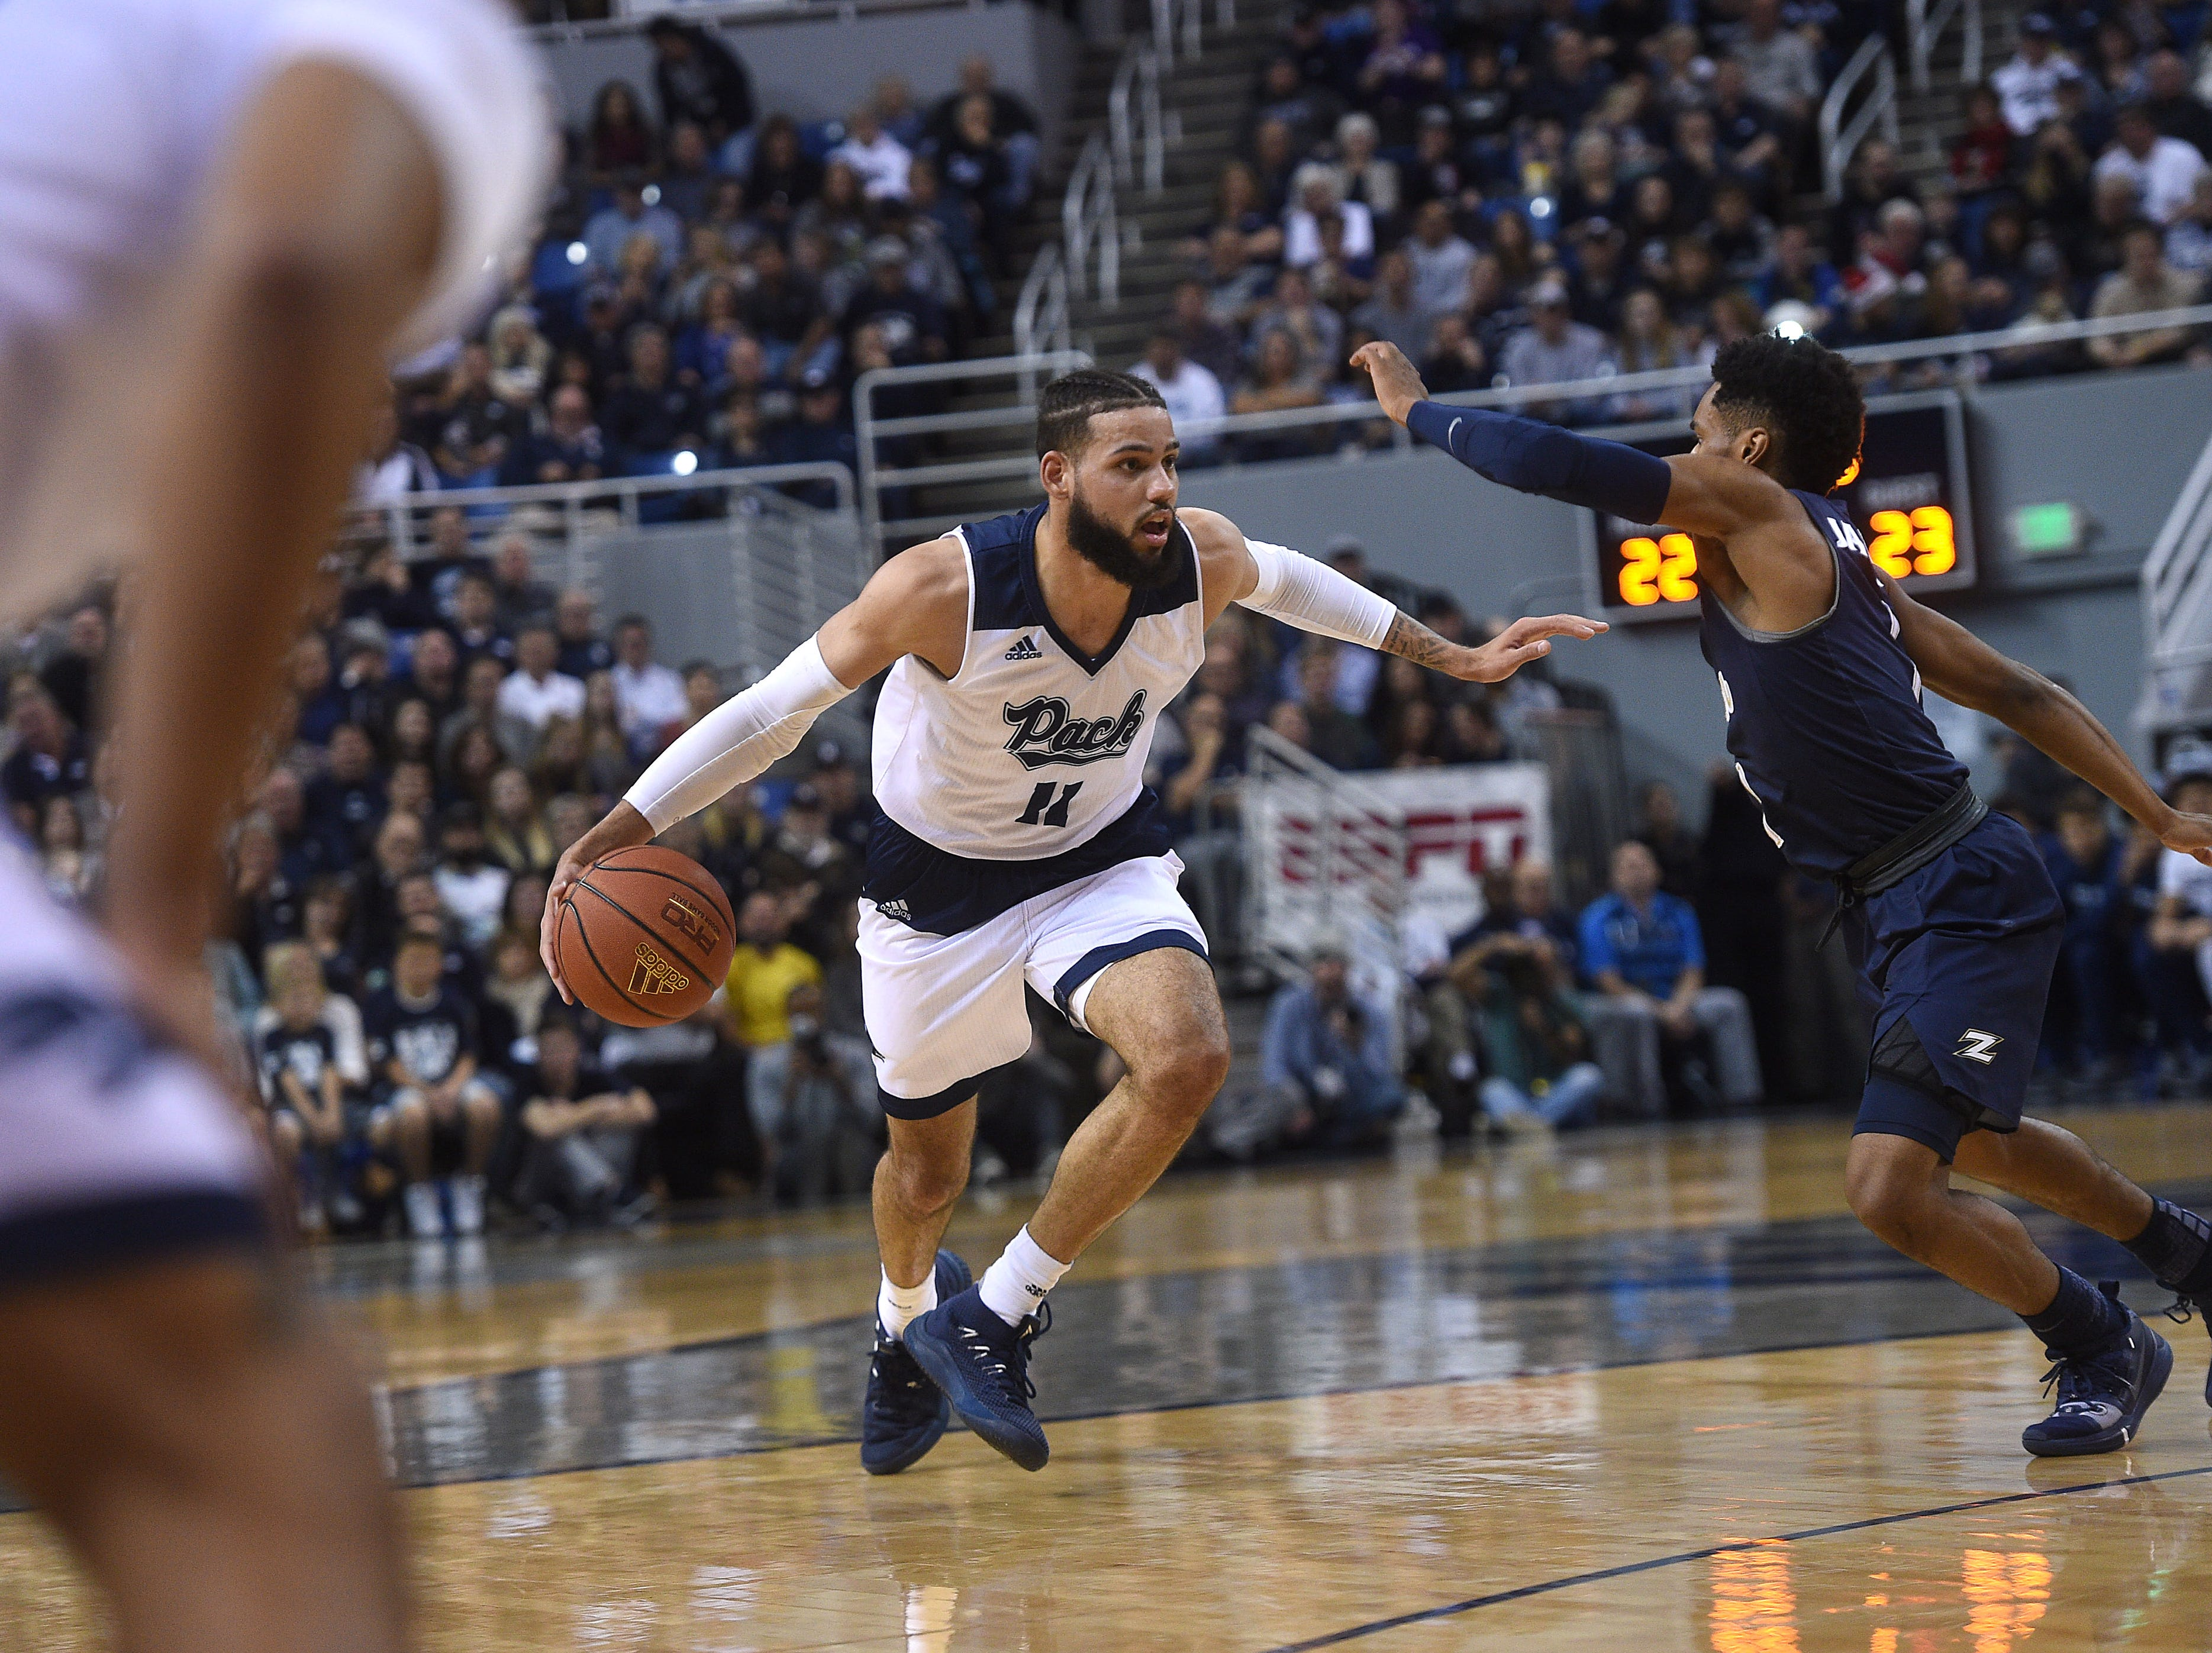 Nevada's Cody Martin (11) brings the ball up court while taking on Akron during their basketball game at Lawlor Events Center in Reno on Dec. 22, 2018.